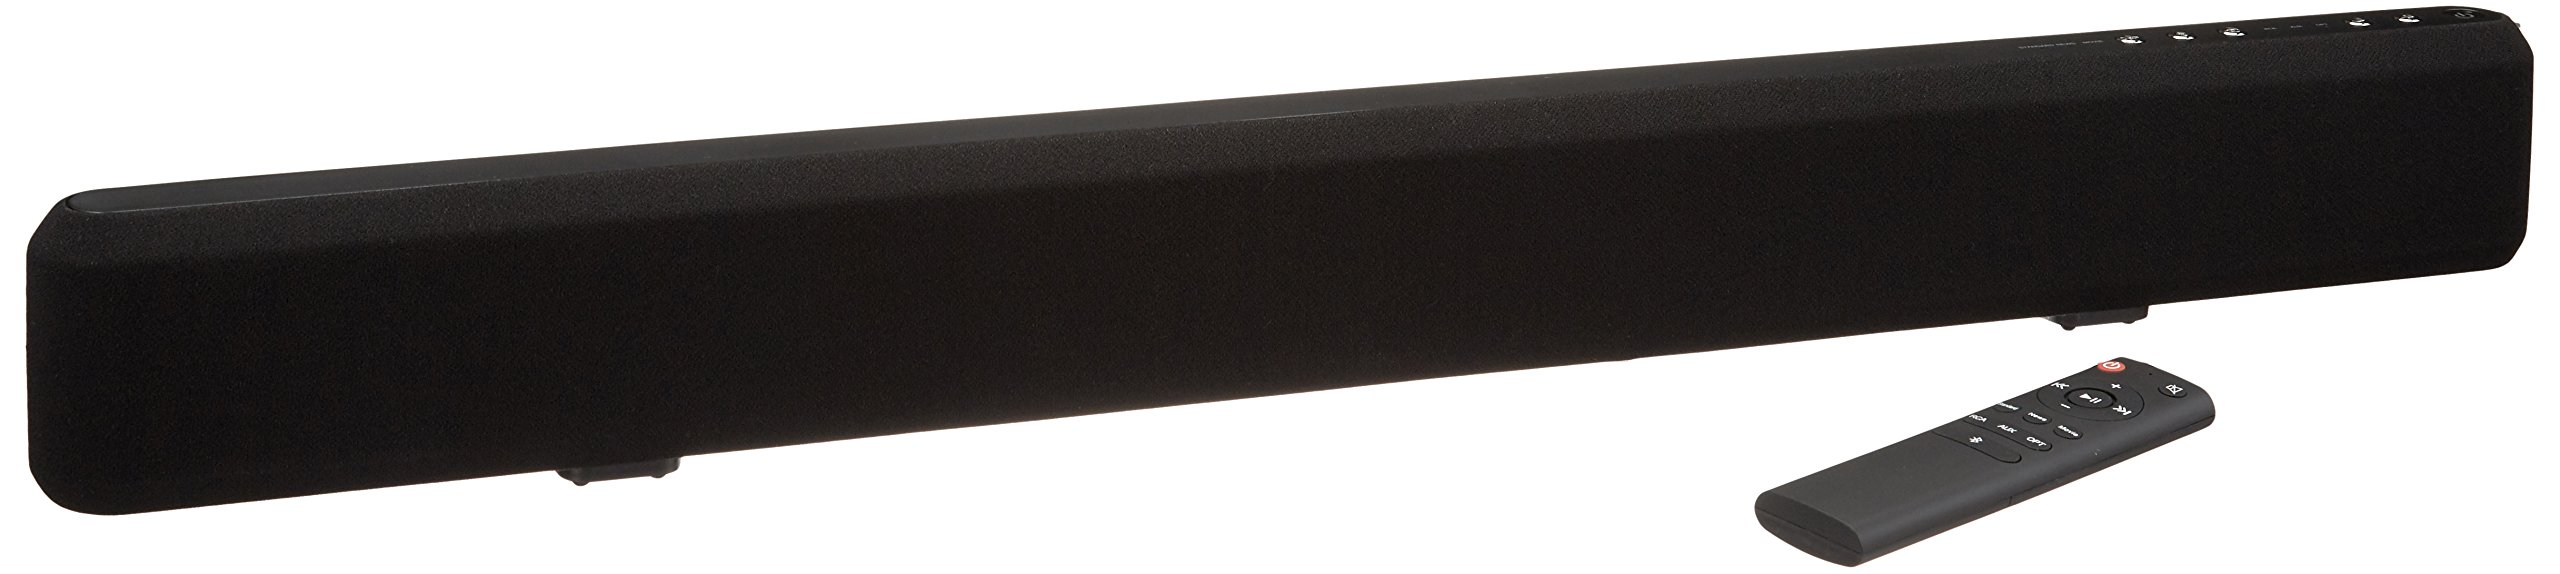 AmazonBasics 2.1 Channel Bluetooth Sound Bar with Built-In Subwoofer by AmazonBasics